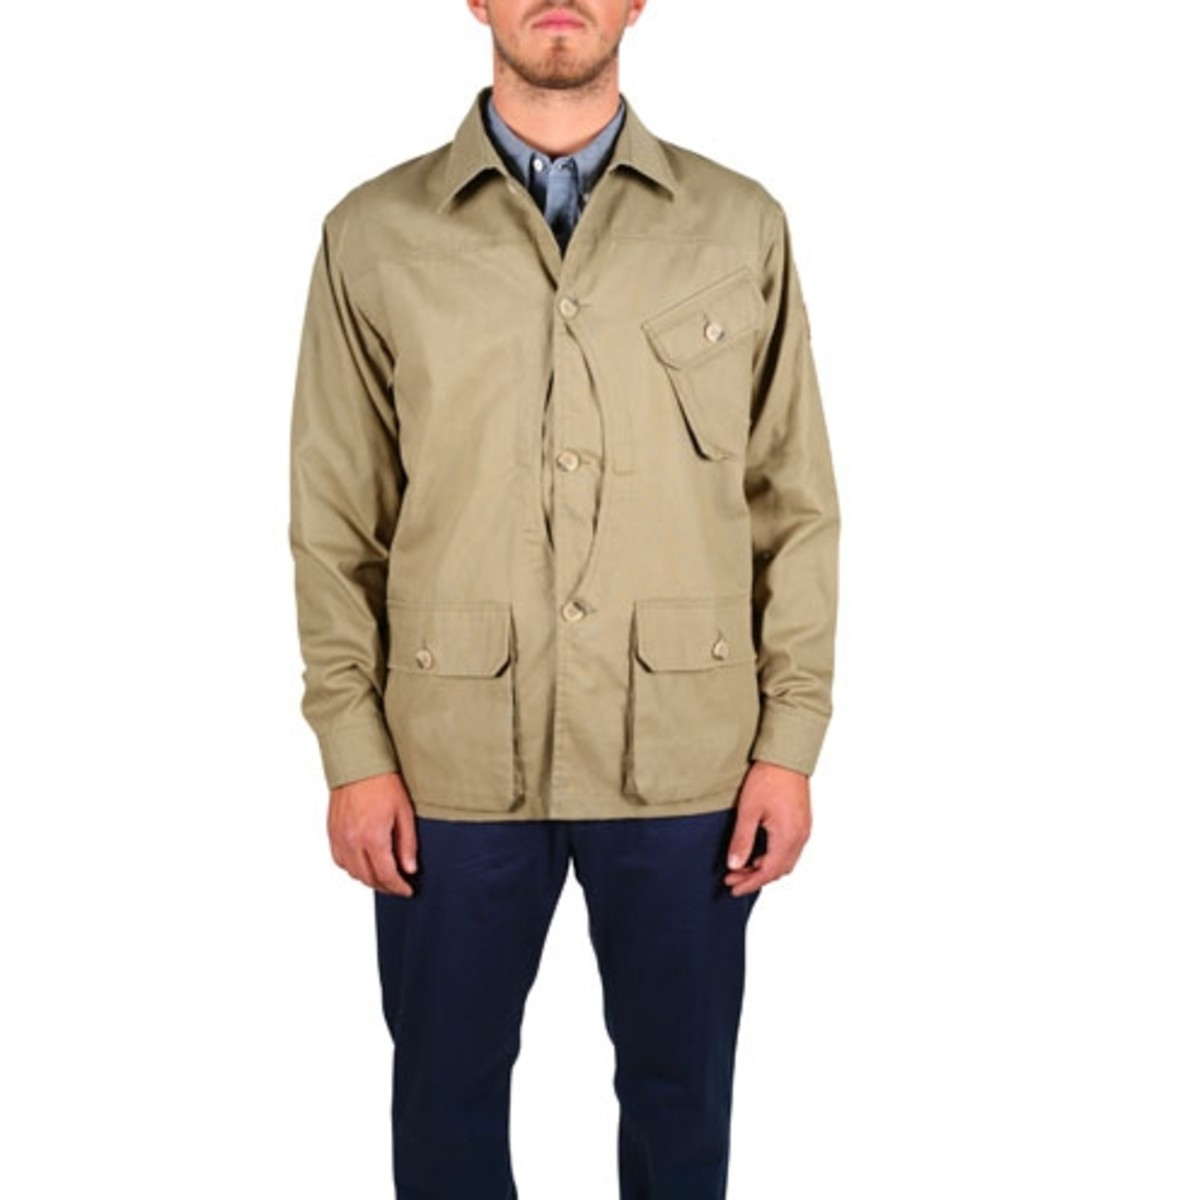 Penfield SS2011 Jackets 45